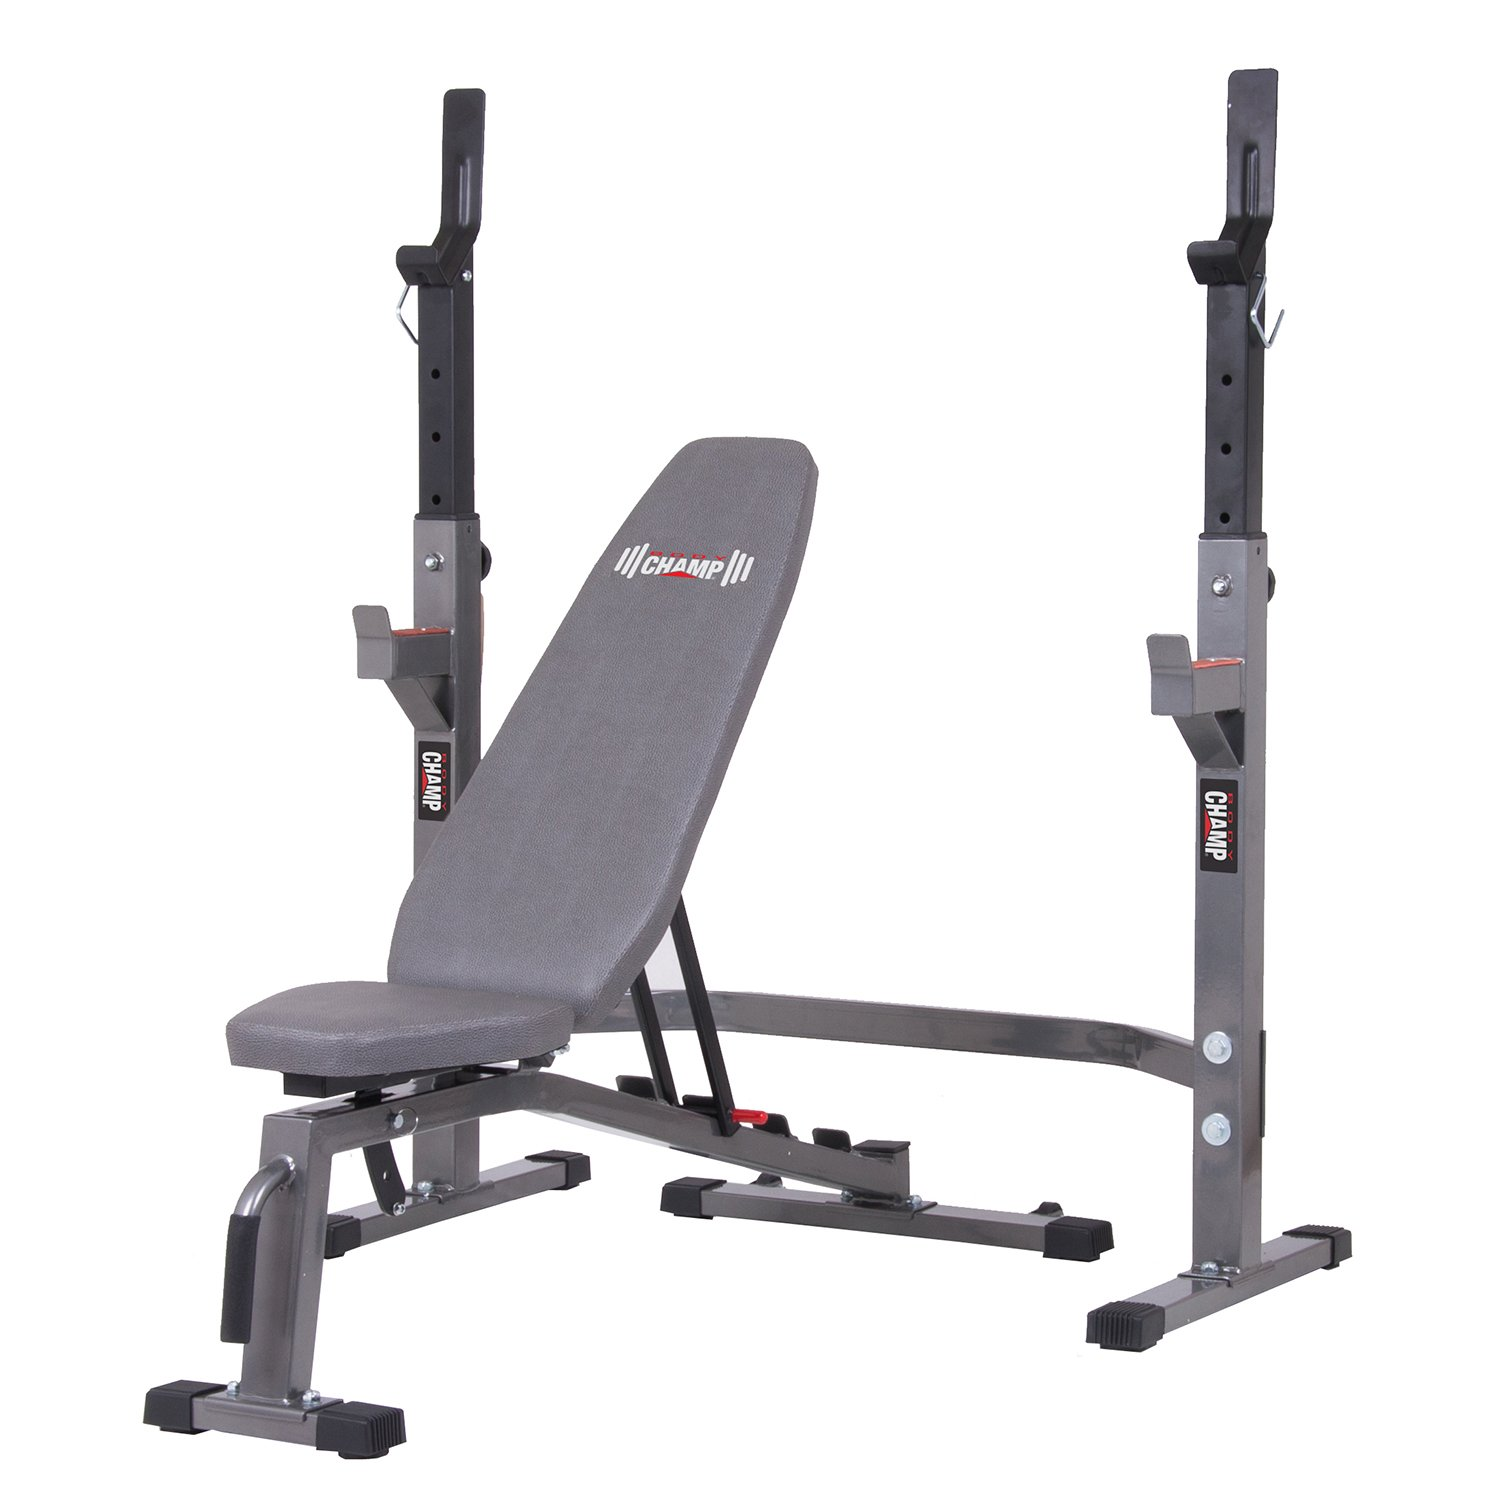 Two Piece Set Olympic Weight Bench with Squat Rack BCB3835 / PRO3900 by Body Champ